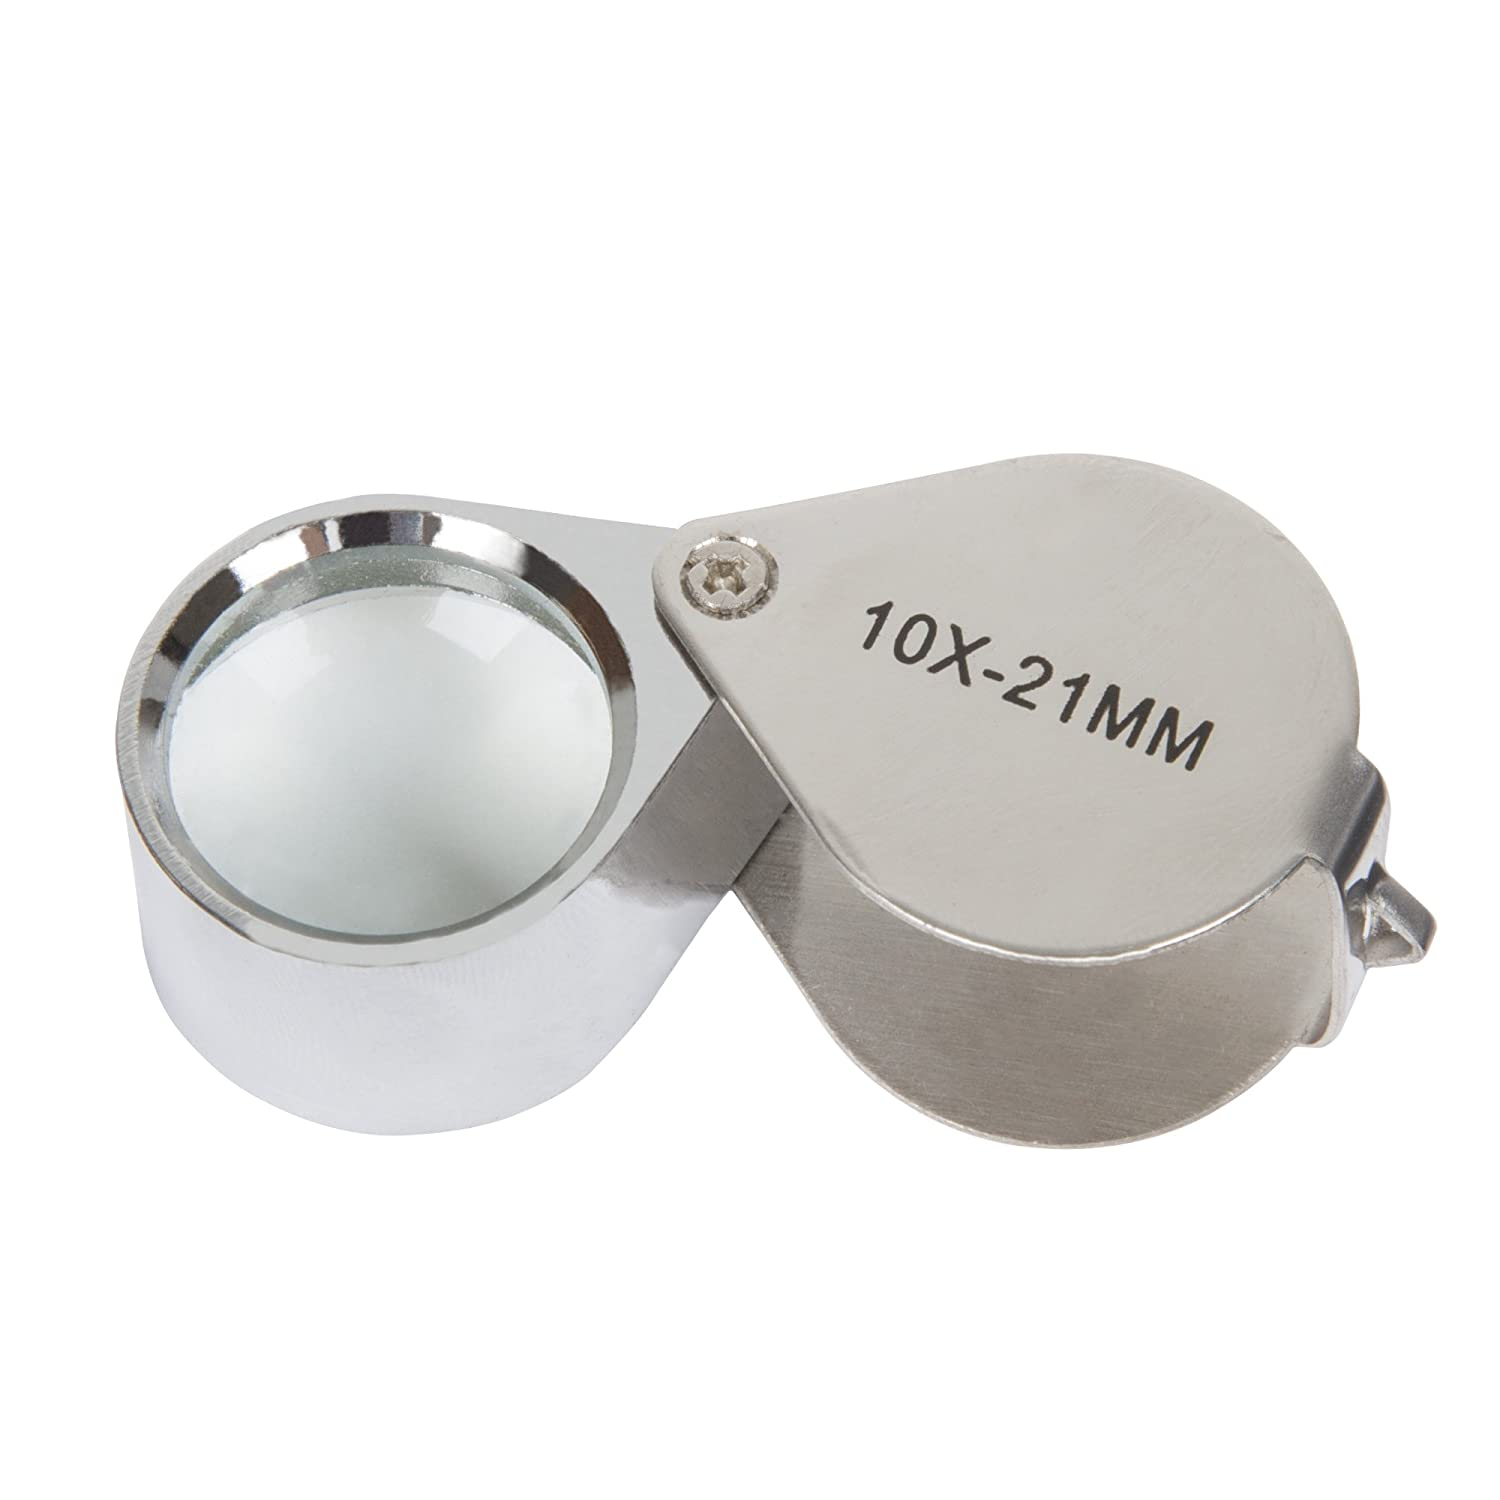 Stalwart 30X Jewelers Eye Loupe Magnifier with Case